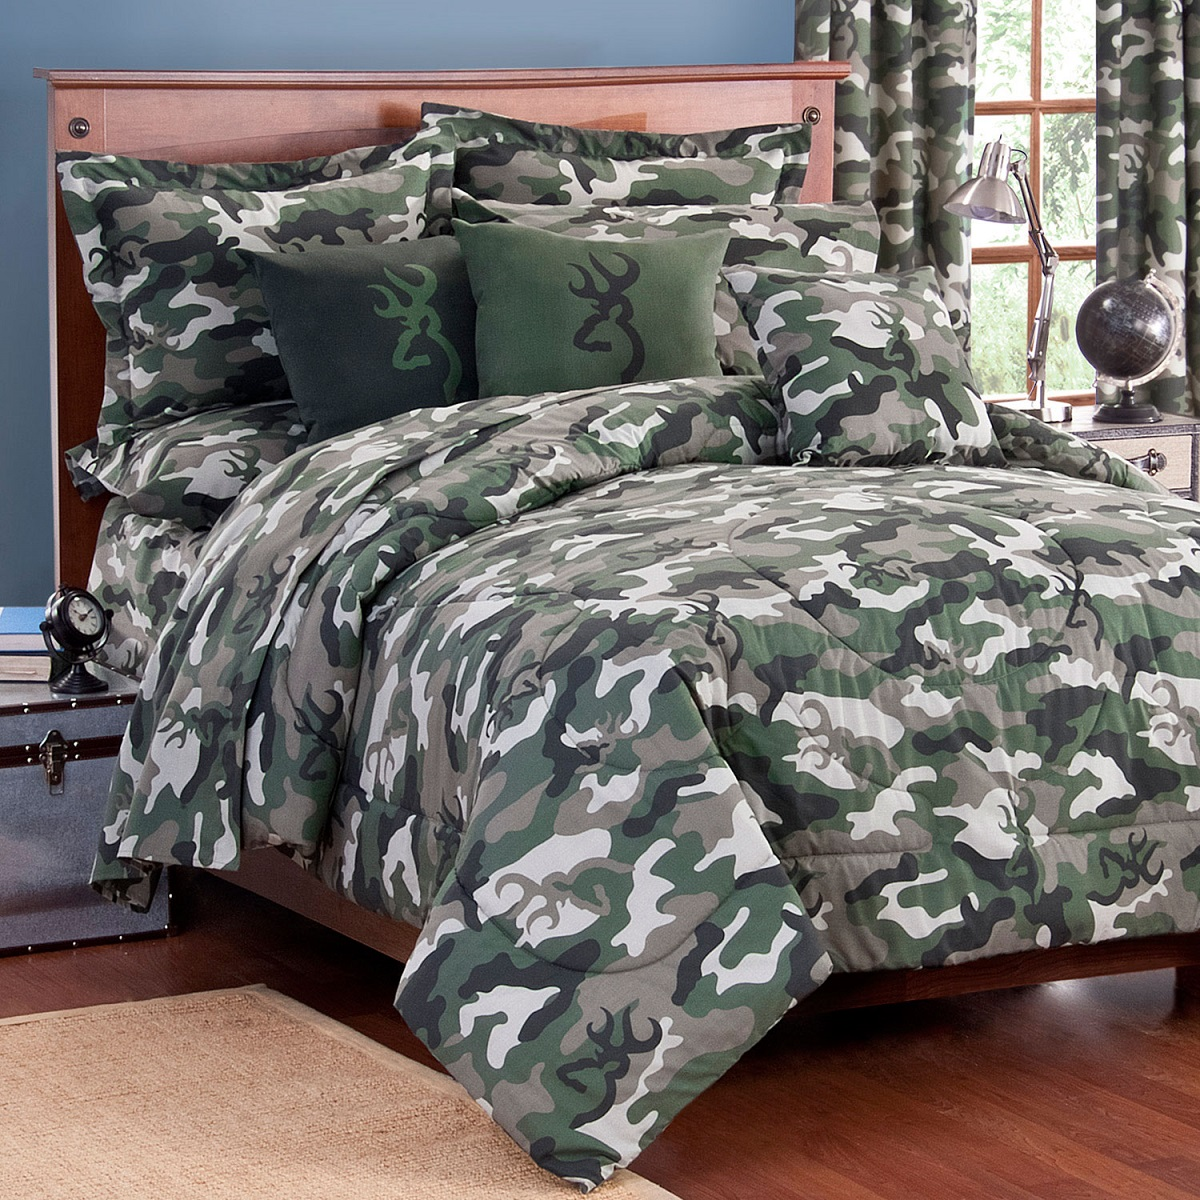 Browning Green Camo Bed In A Bag Comforter Sheet Set